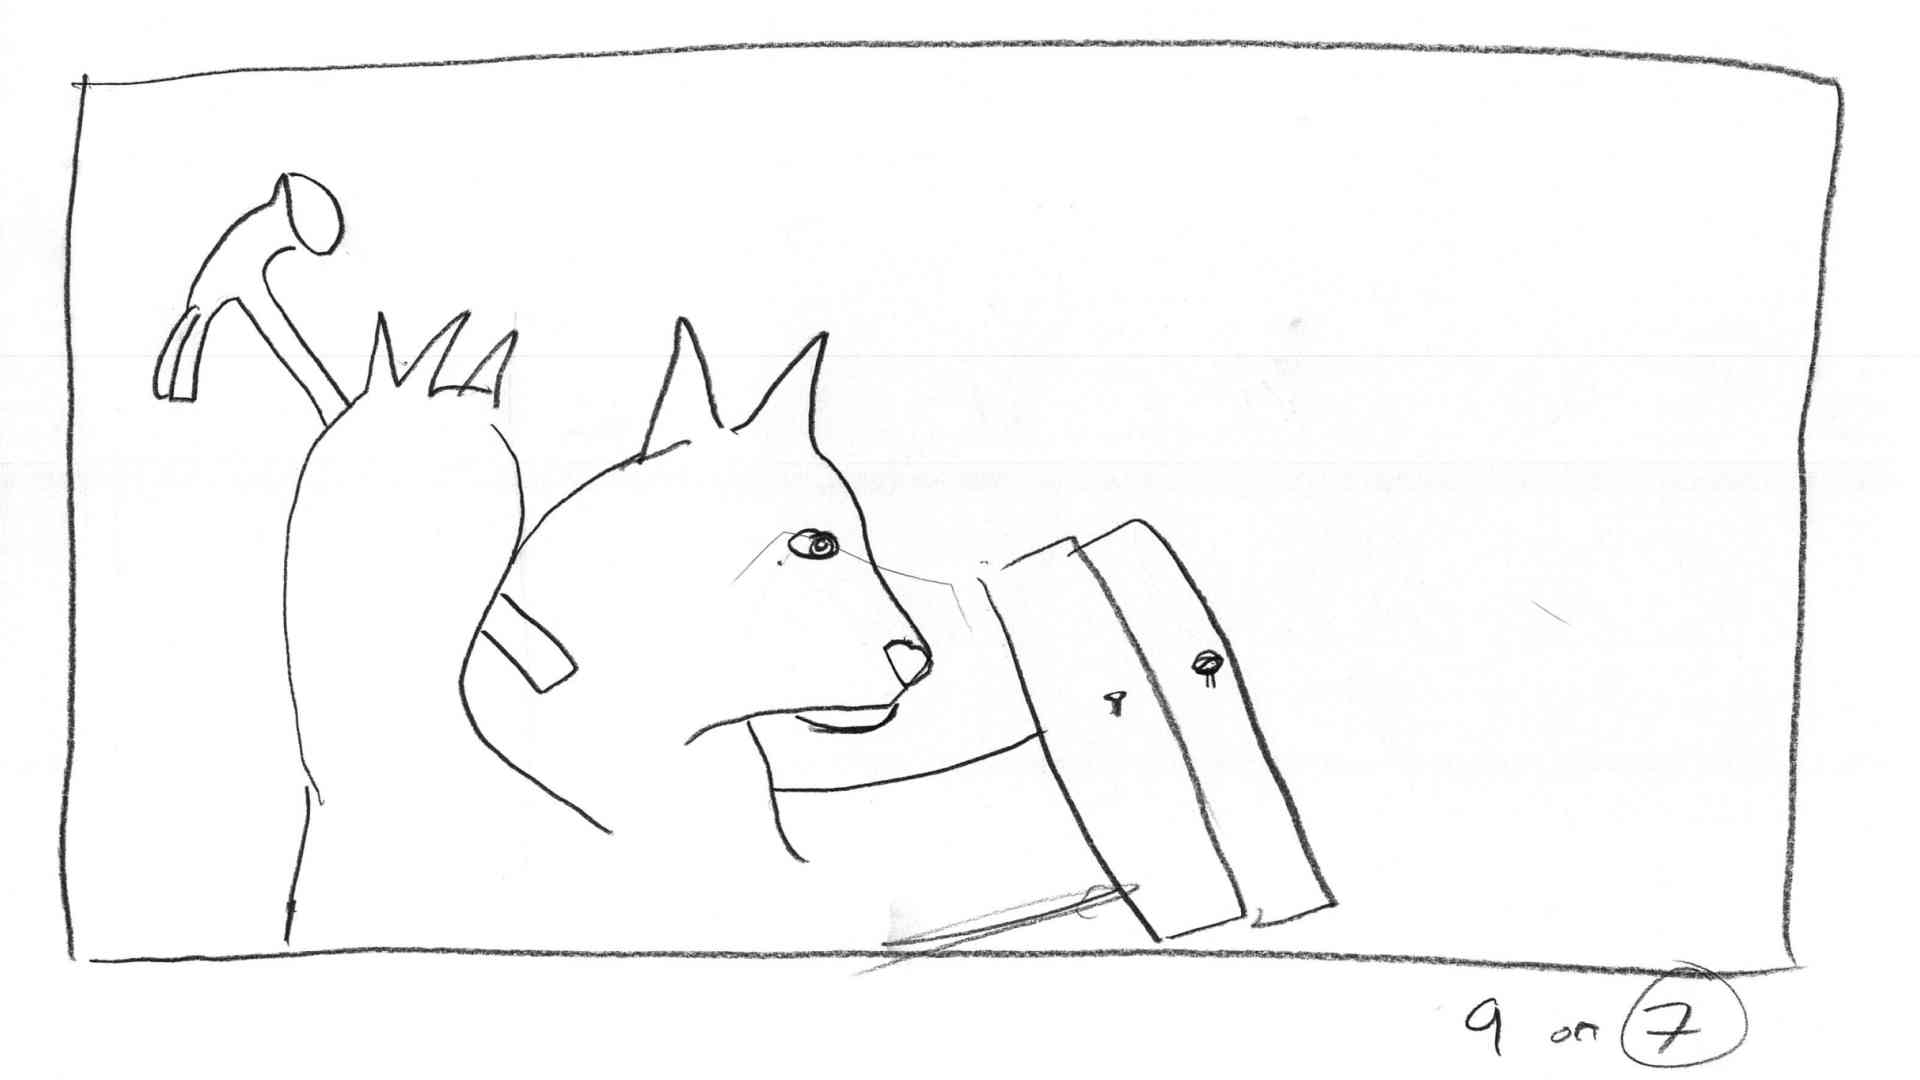 rough storyboard for, 'Animals' by Keith Del Principe